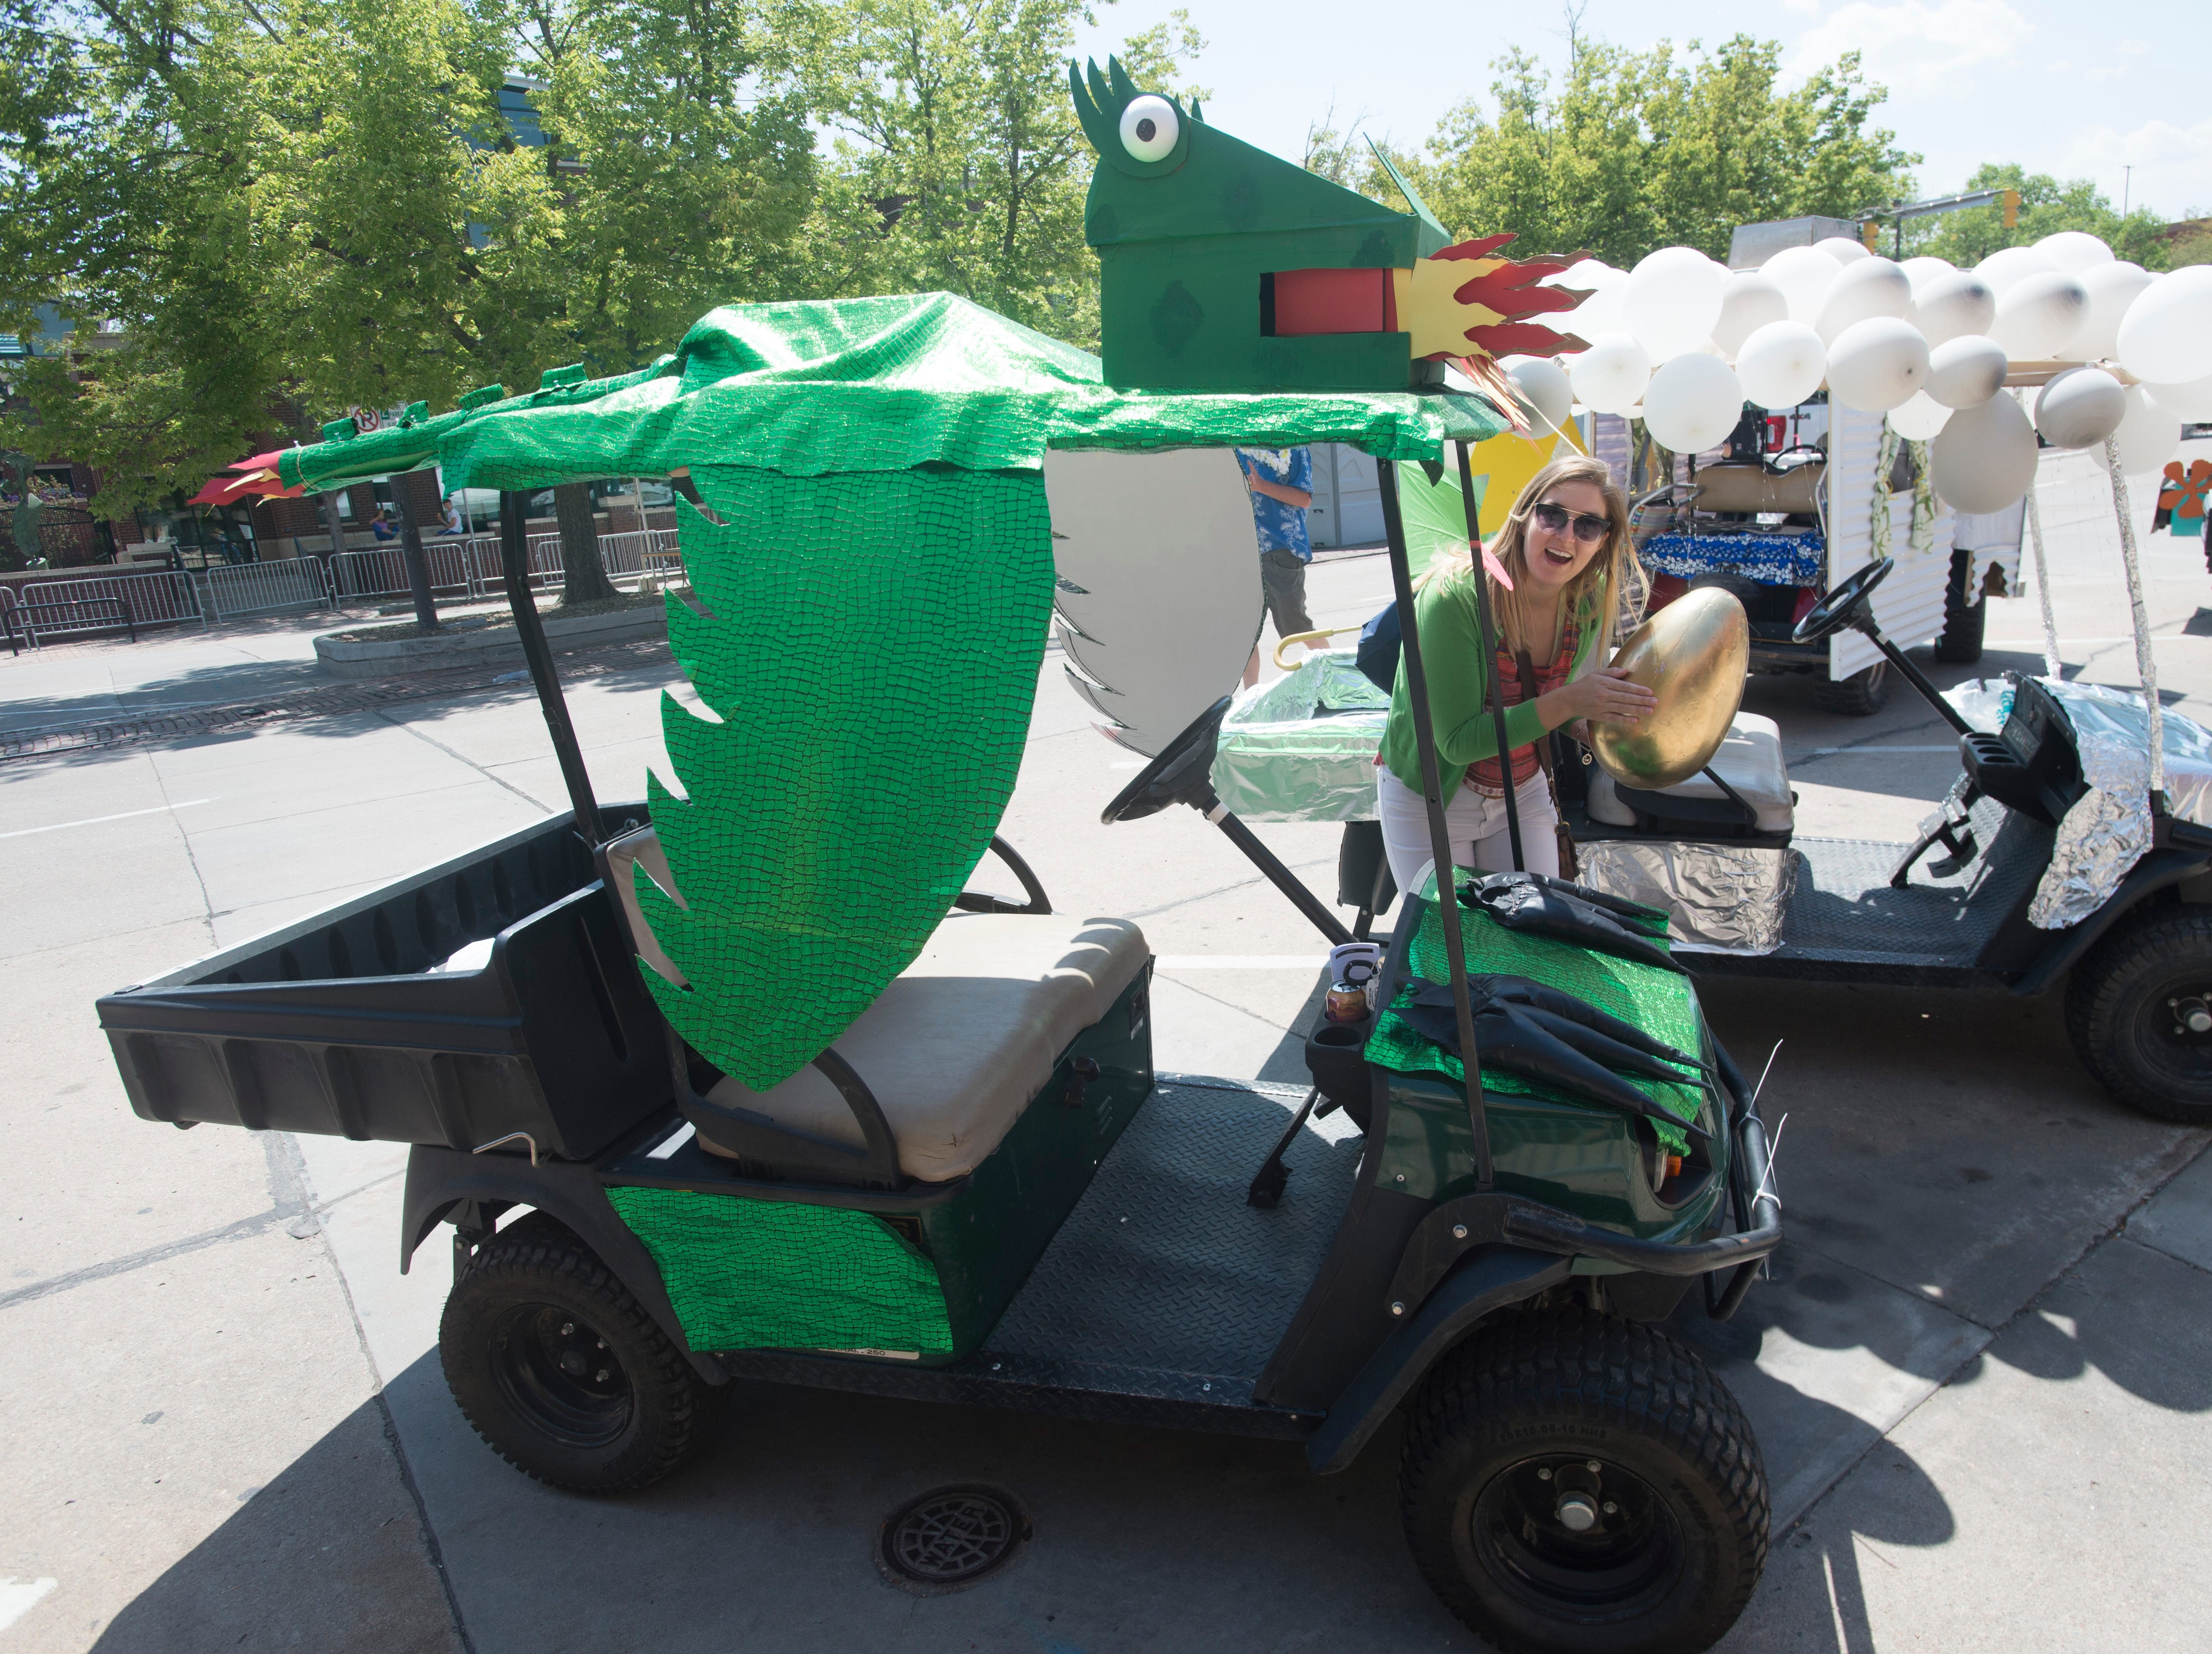 Golf Cart 9: Vote for your favorite NewWestFest decorated golf cart.